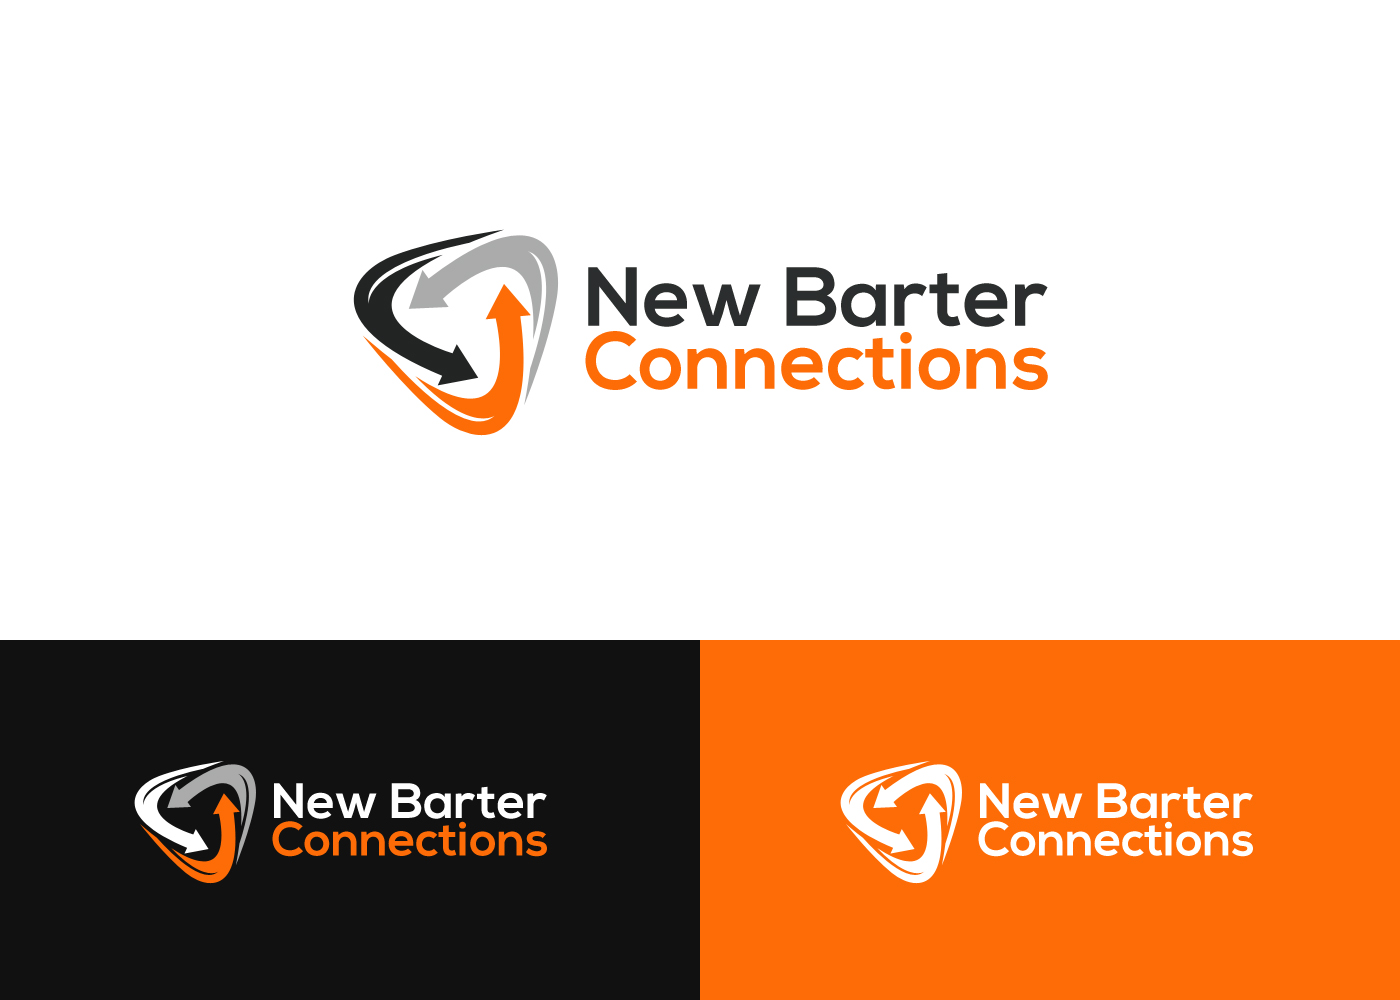 Serious Modern Logo Design For New Barter Connections